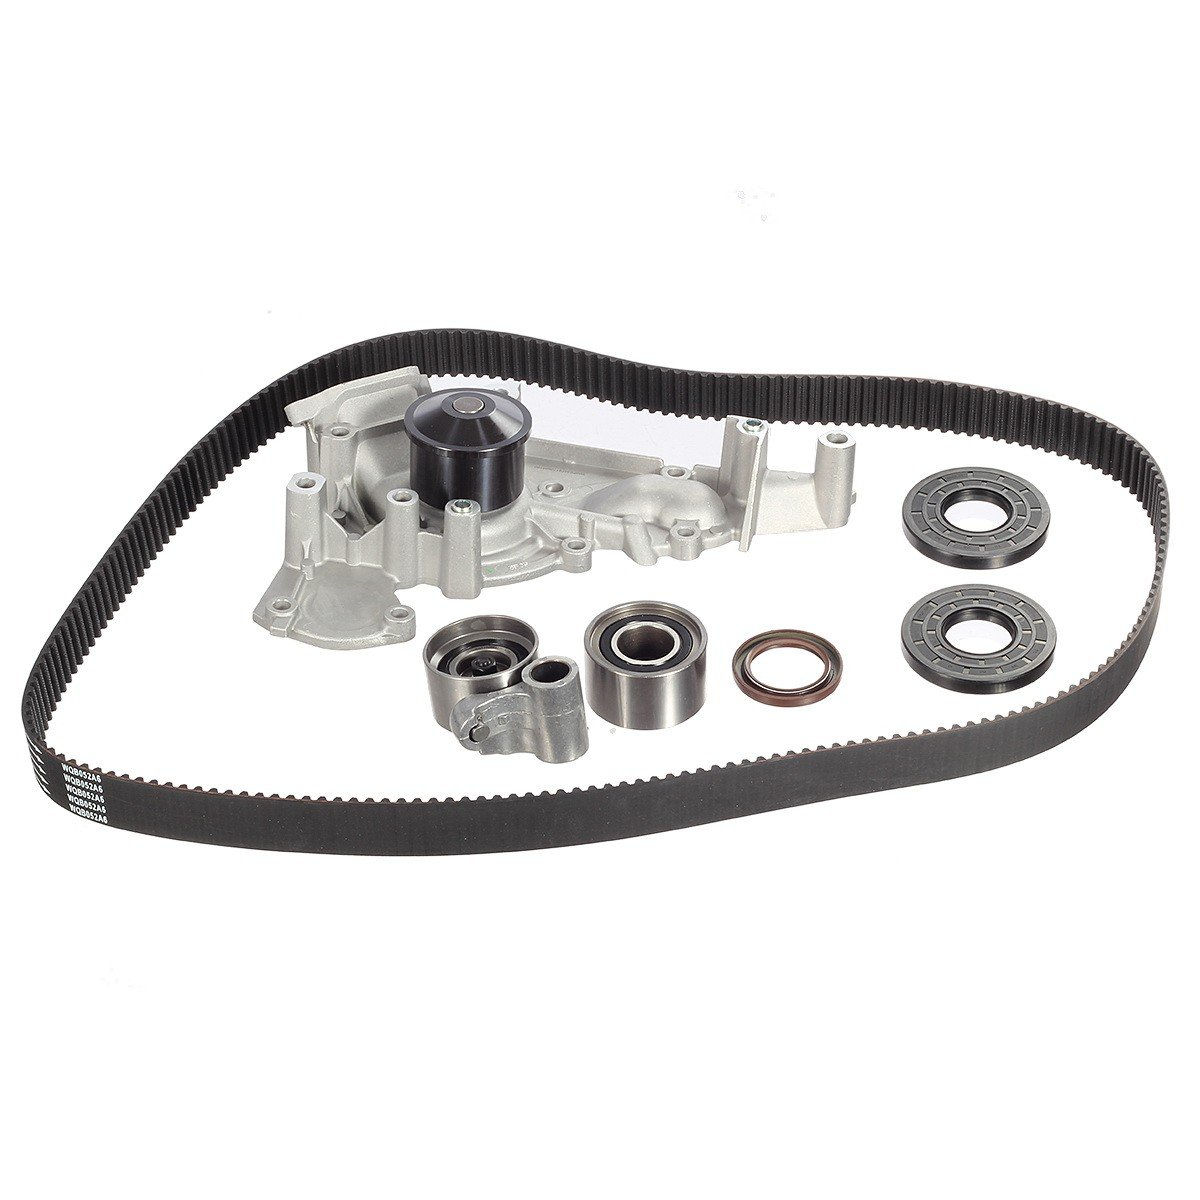 Tkt 021 Tkt021 Engine Timing Belt Kit With Water Pump Saturn Fit For Lexus Toyota Automotive